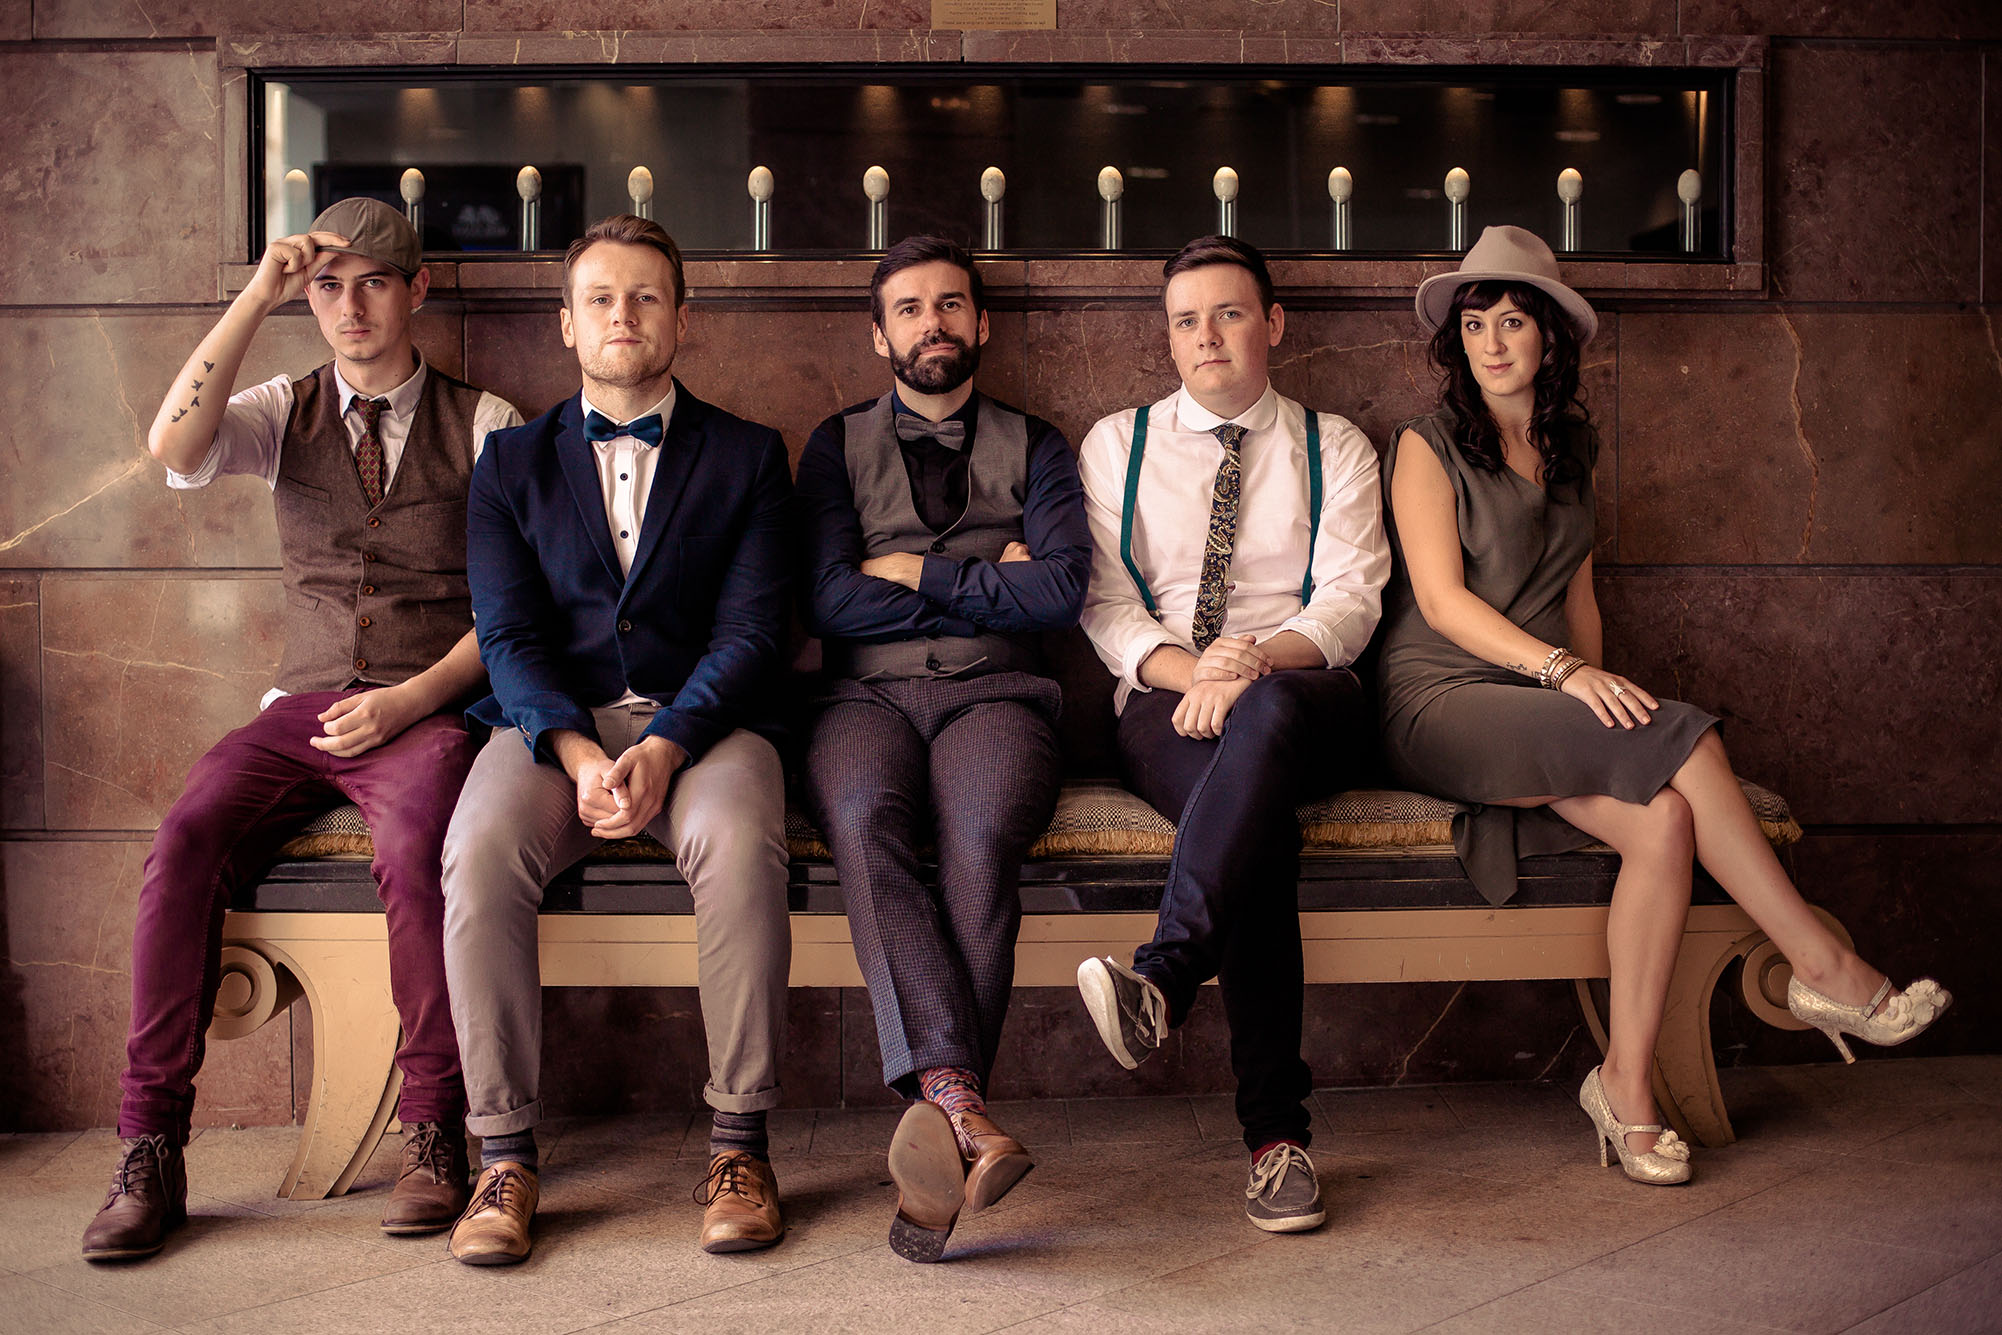 rend-collective-rend-collective-39007523-2002-1335.jpg